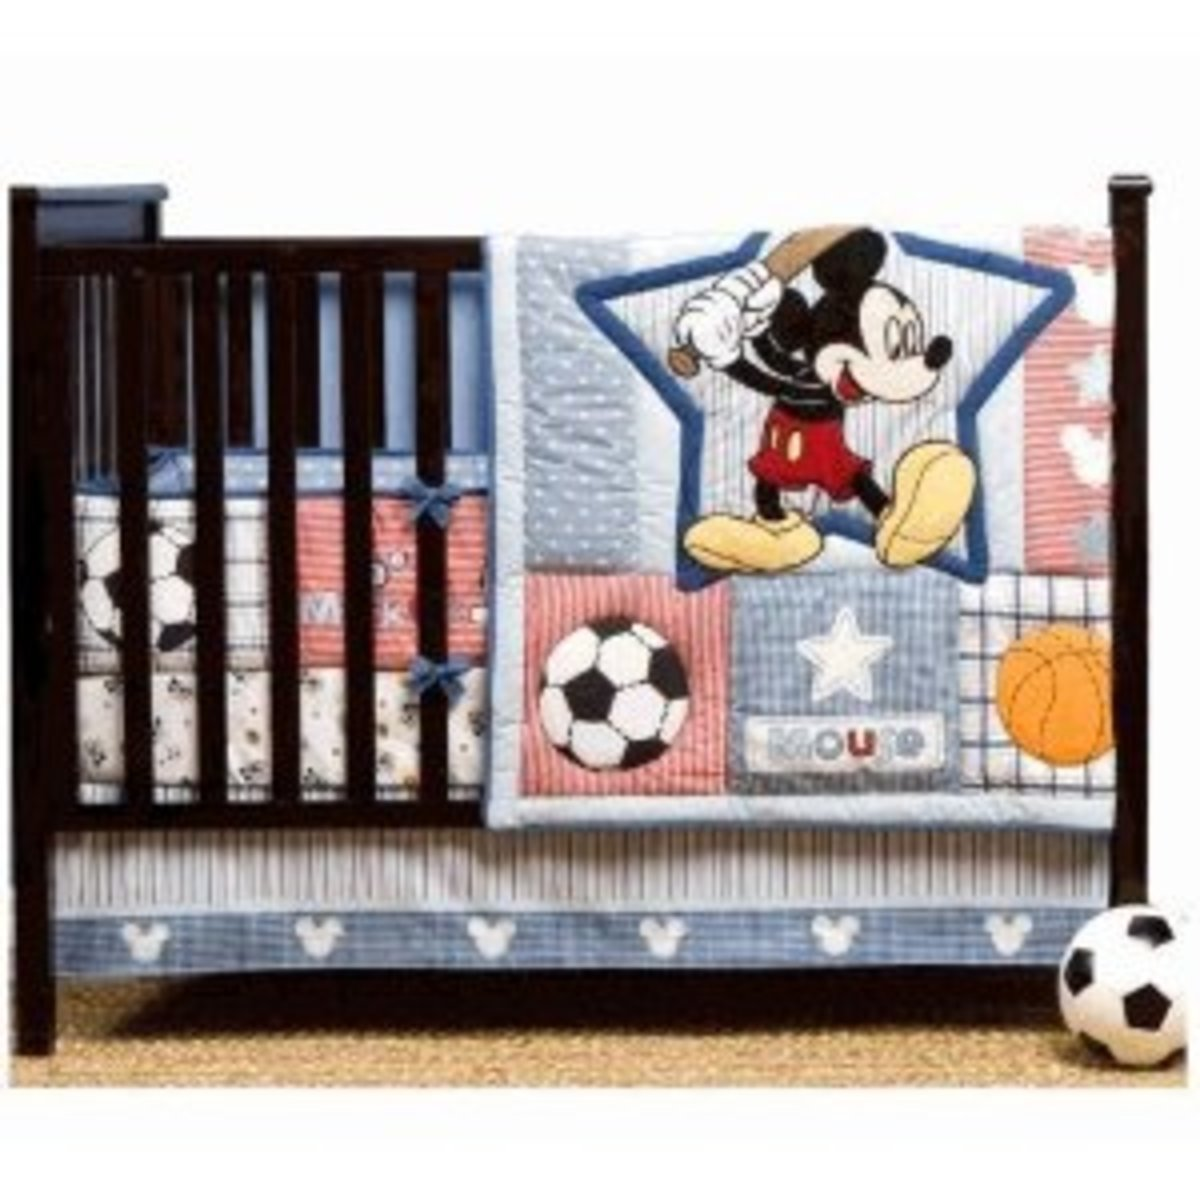 Up to Bat Disney Baby 4 Piece Mickey Mouse Crib Bedding Set available at a great price from Amazon.com